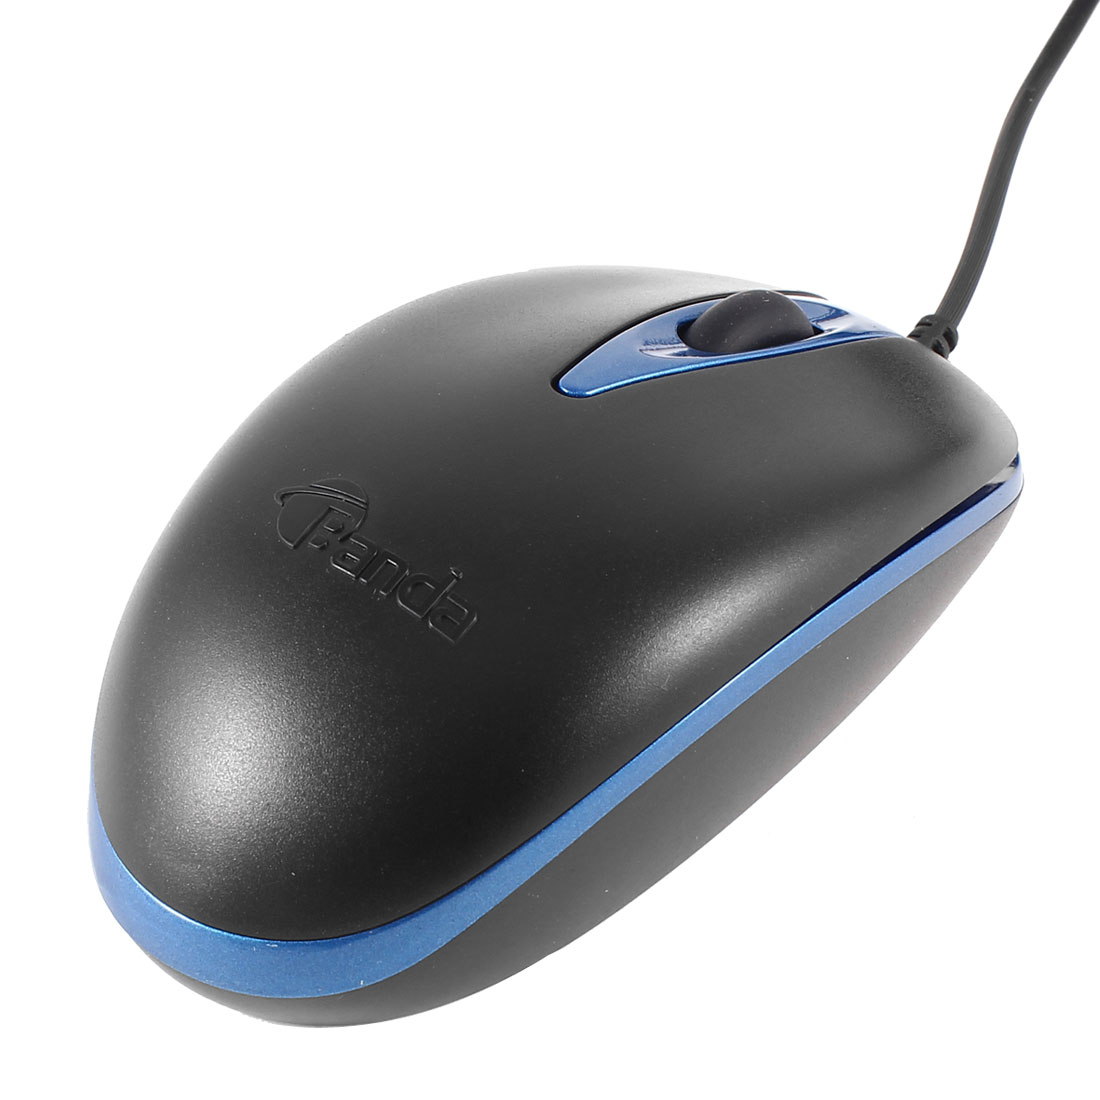 Red LED Light Lamp USB 1200DPI 3D Optical Mouse Black Blue for Desktop